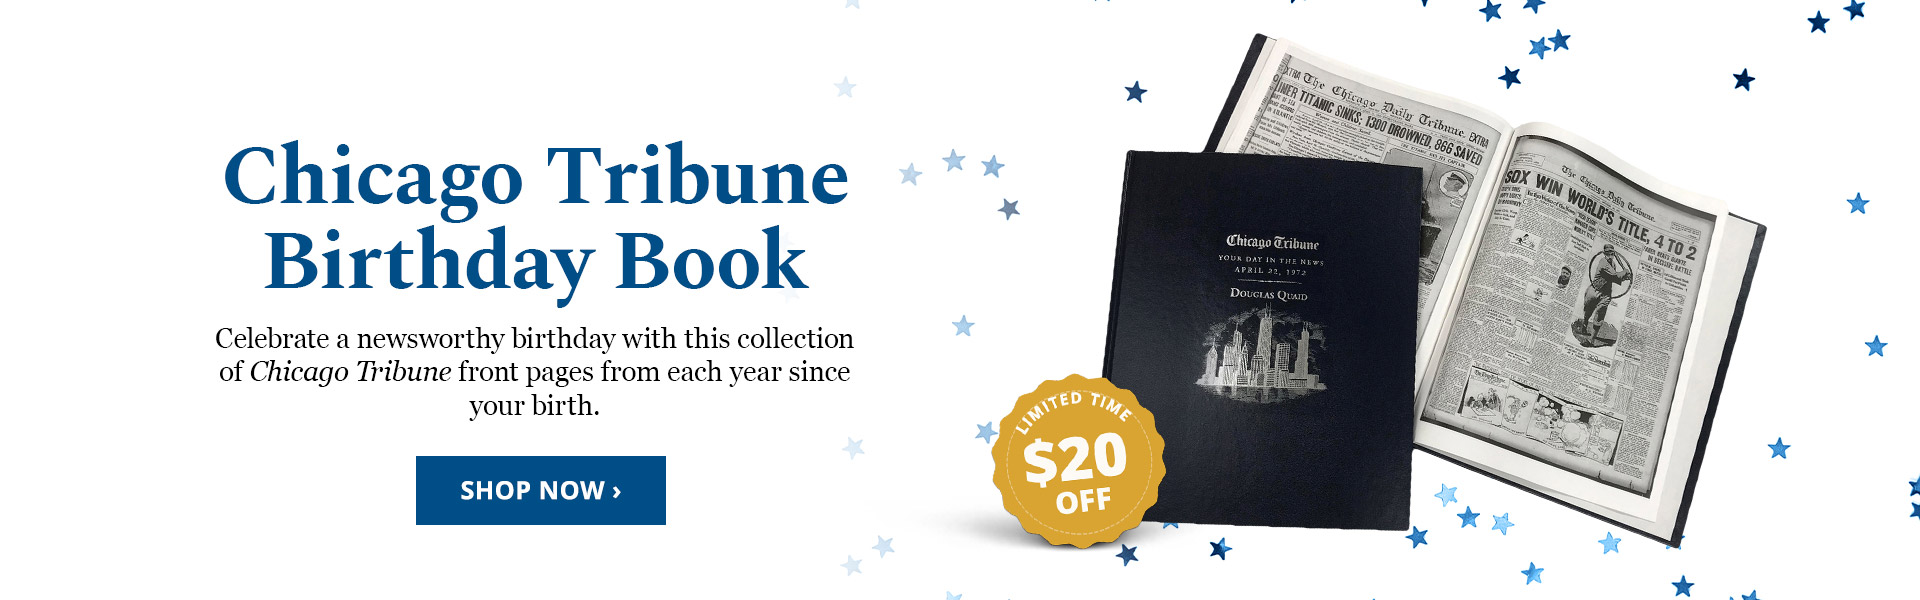 Chicago Tribune Birthday Book